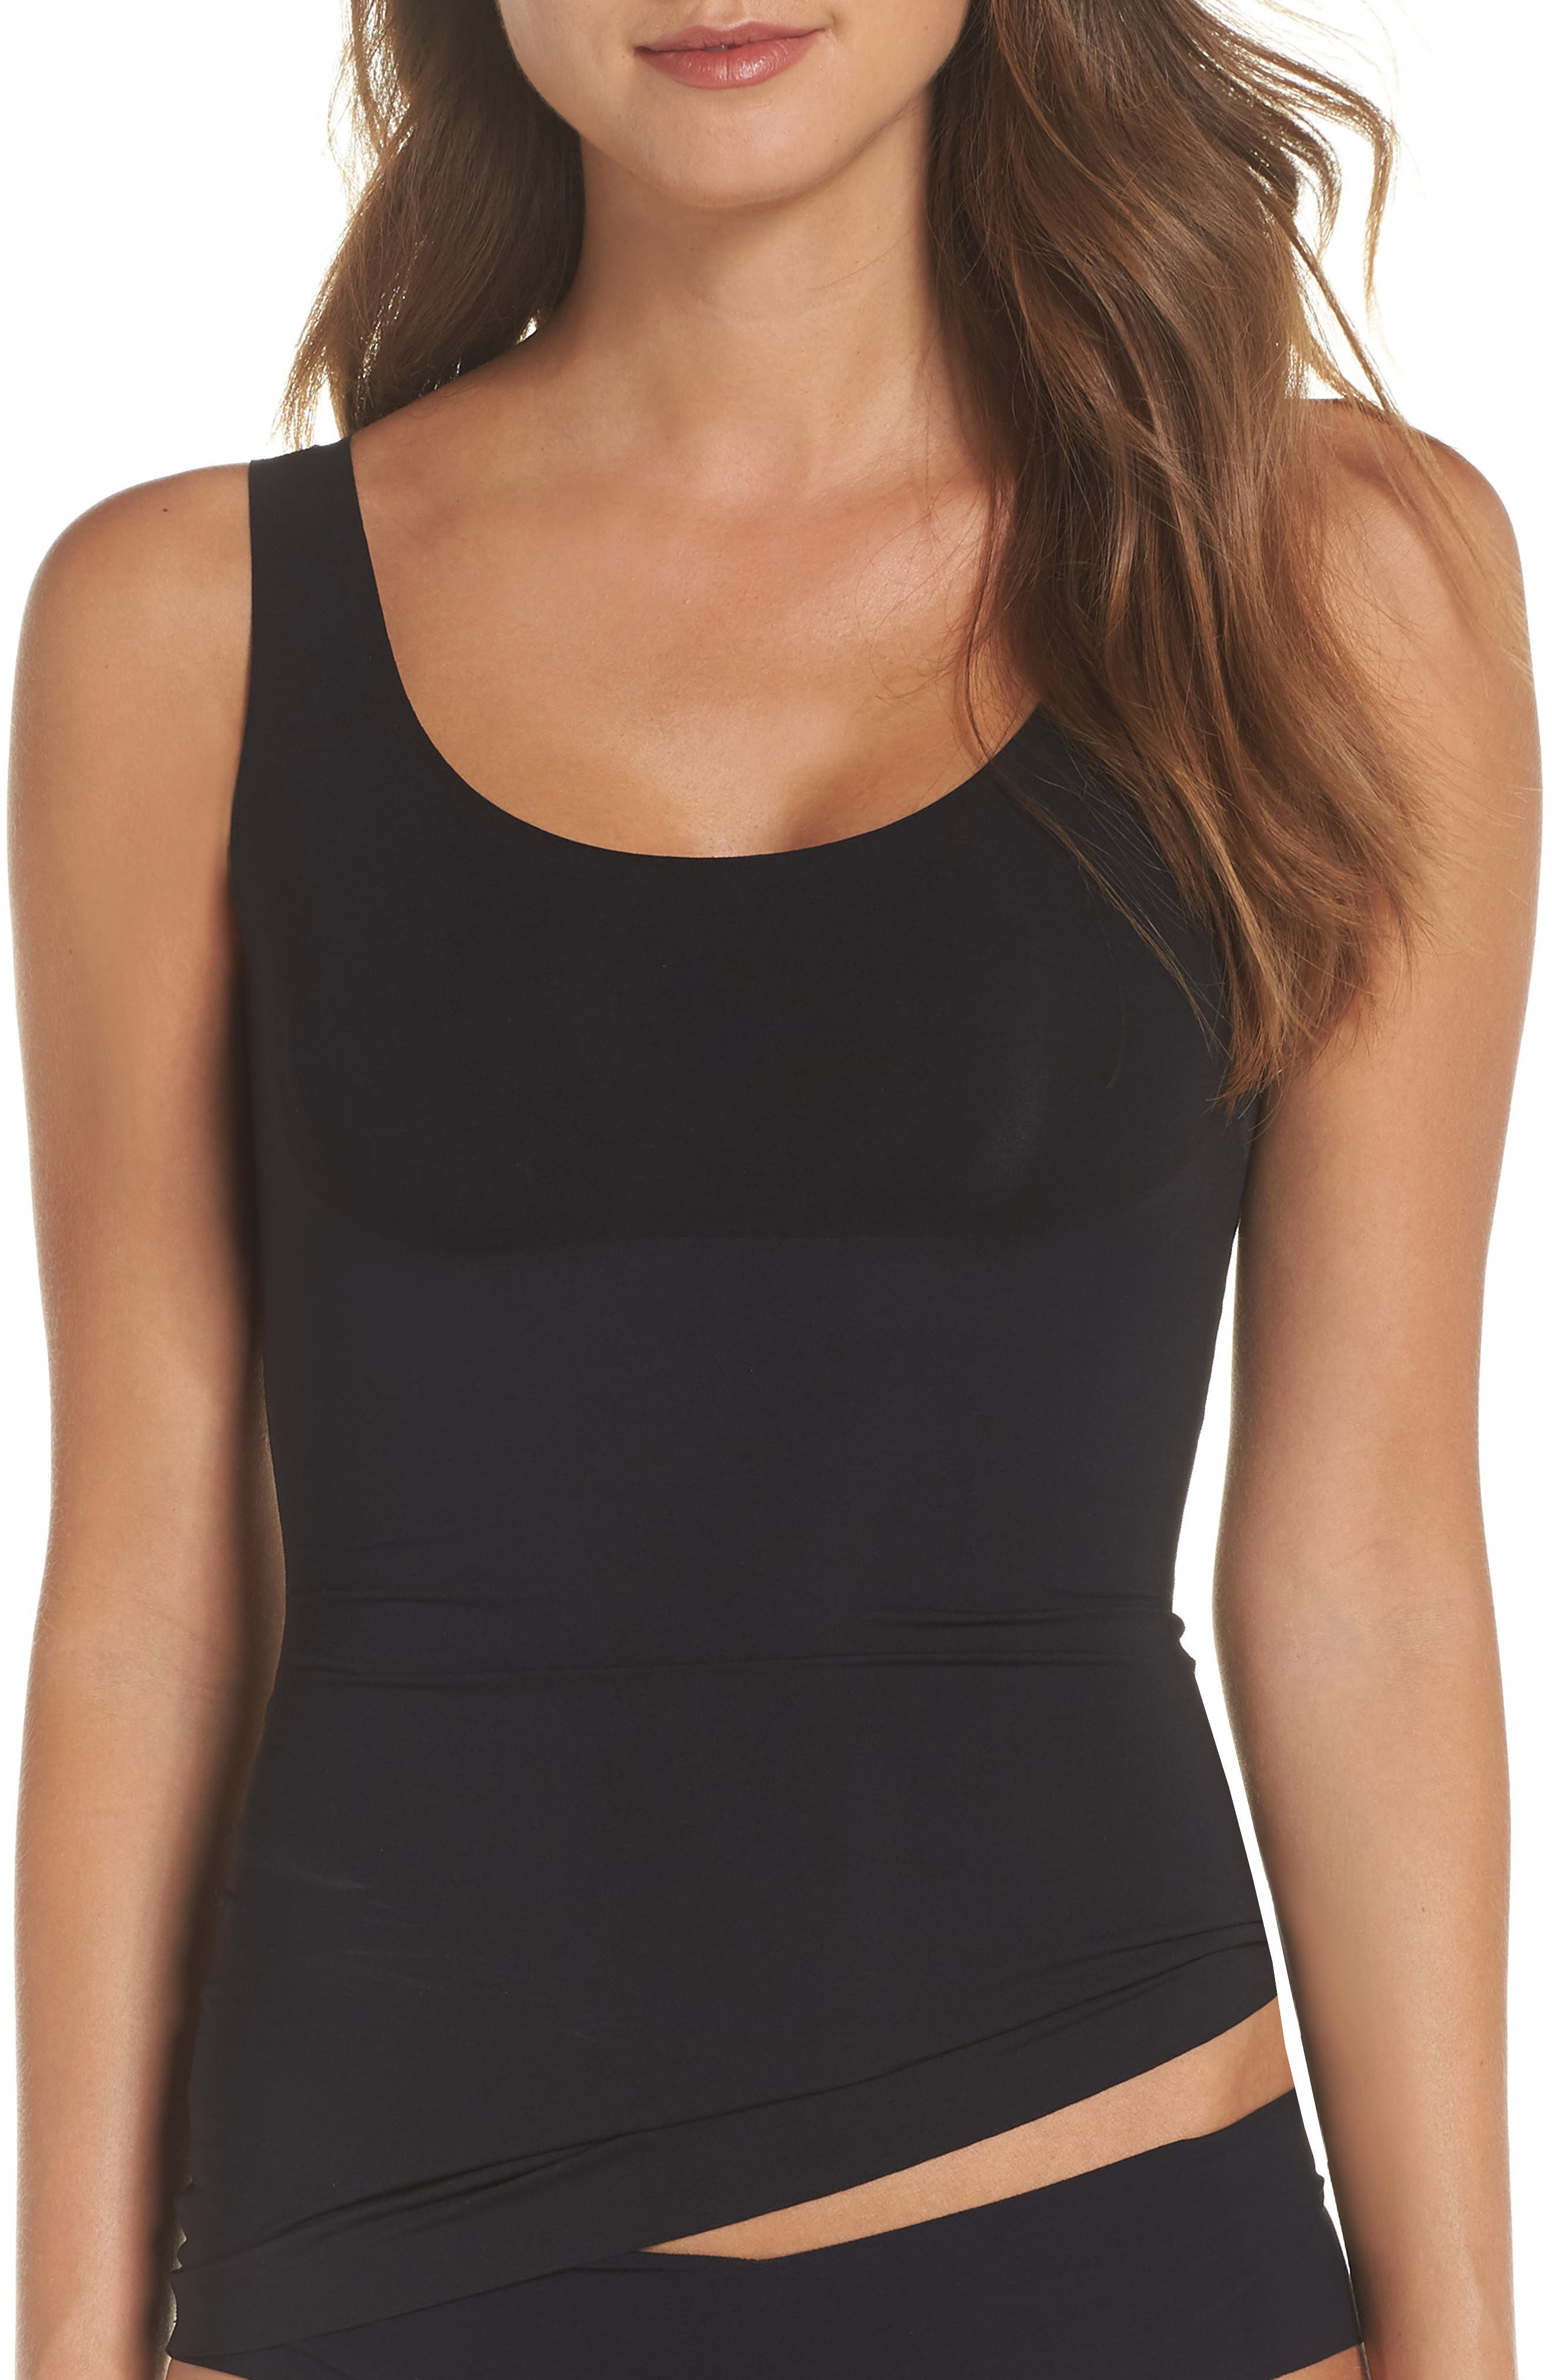 A slimming tank made from lightweight, breathable microfiber creates a smooth look under clothing without compressing the bust. Style Name: Spanx Thinstincts Tank. Style Number: 5666961. Available in stores.